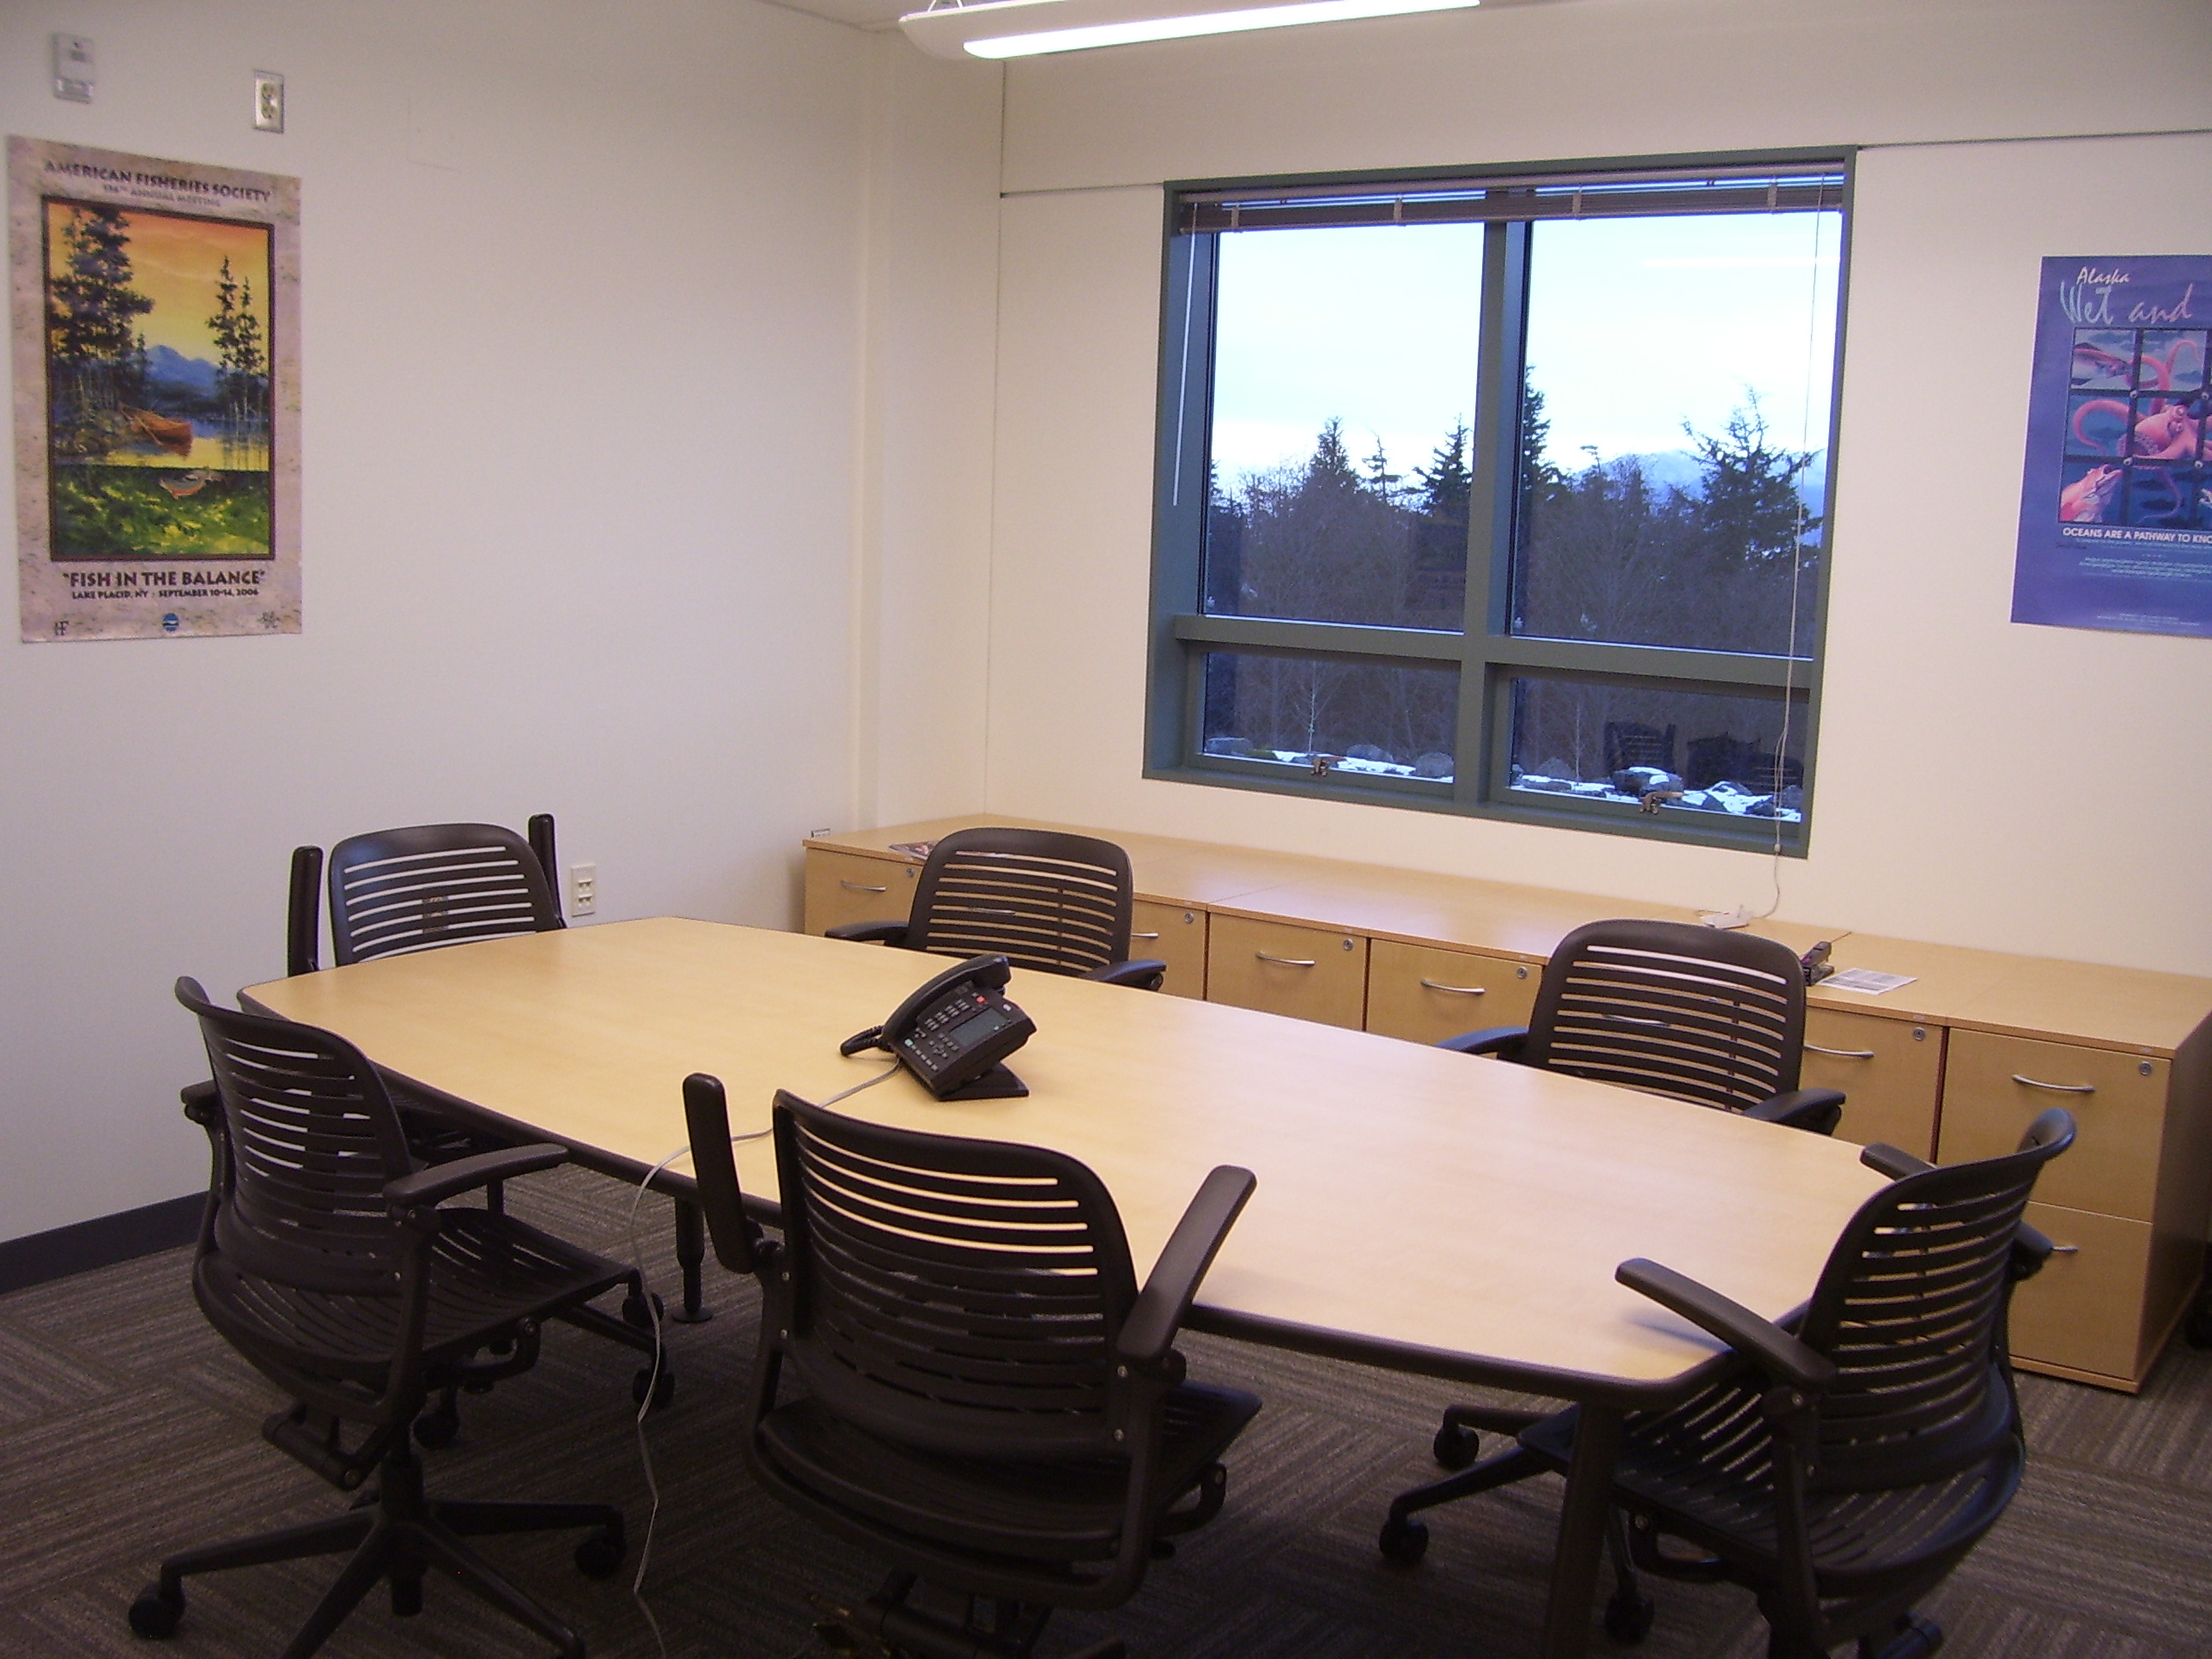 205 Lena Point | 6 people | conference room